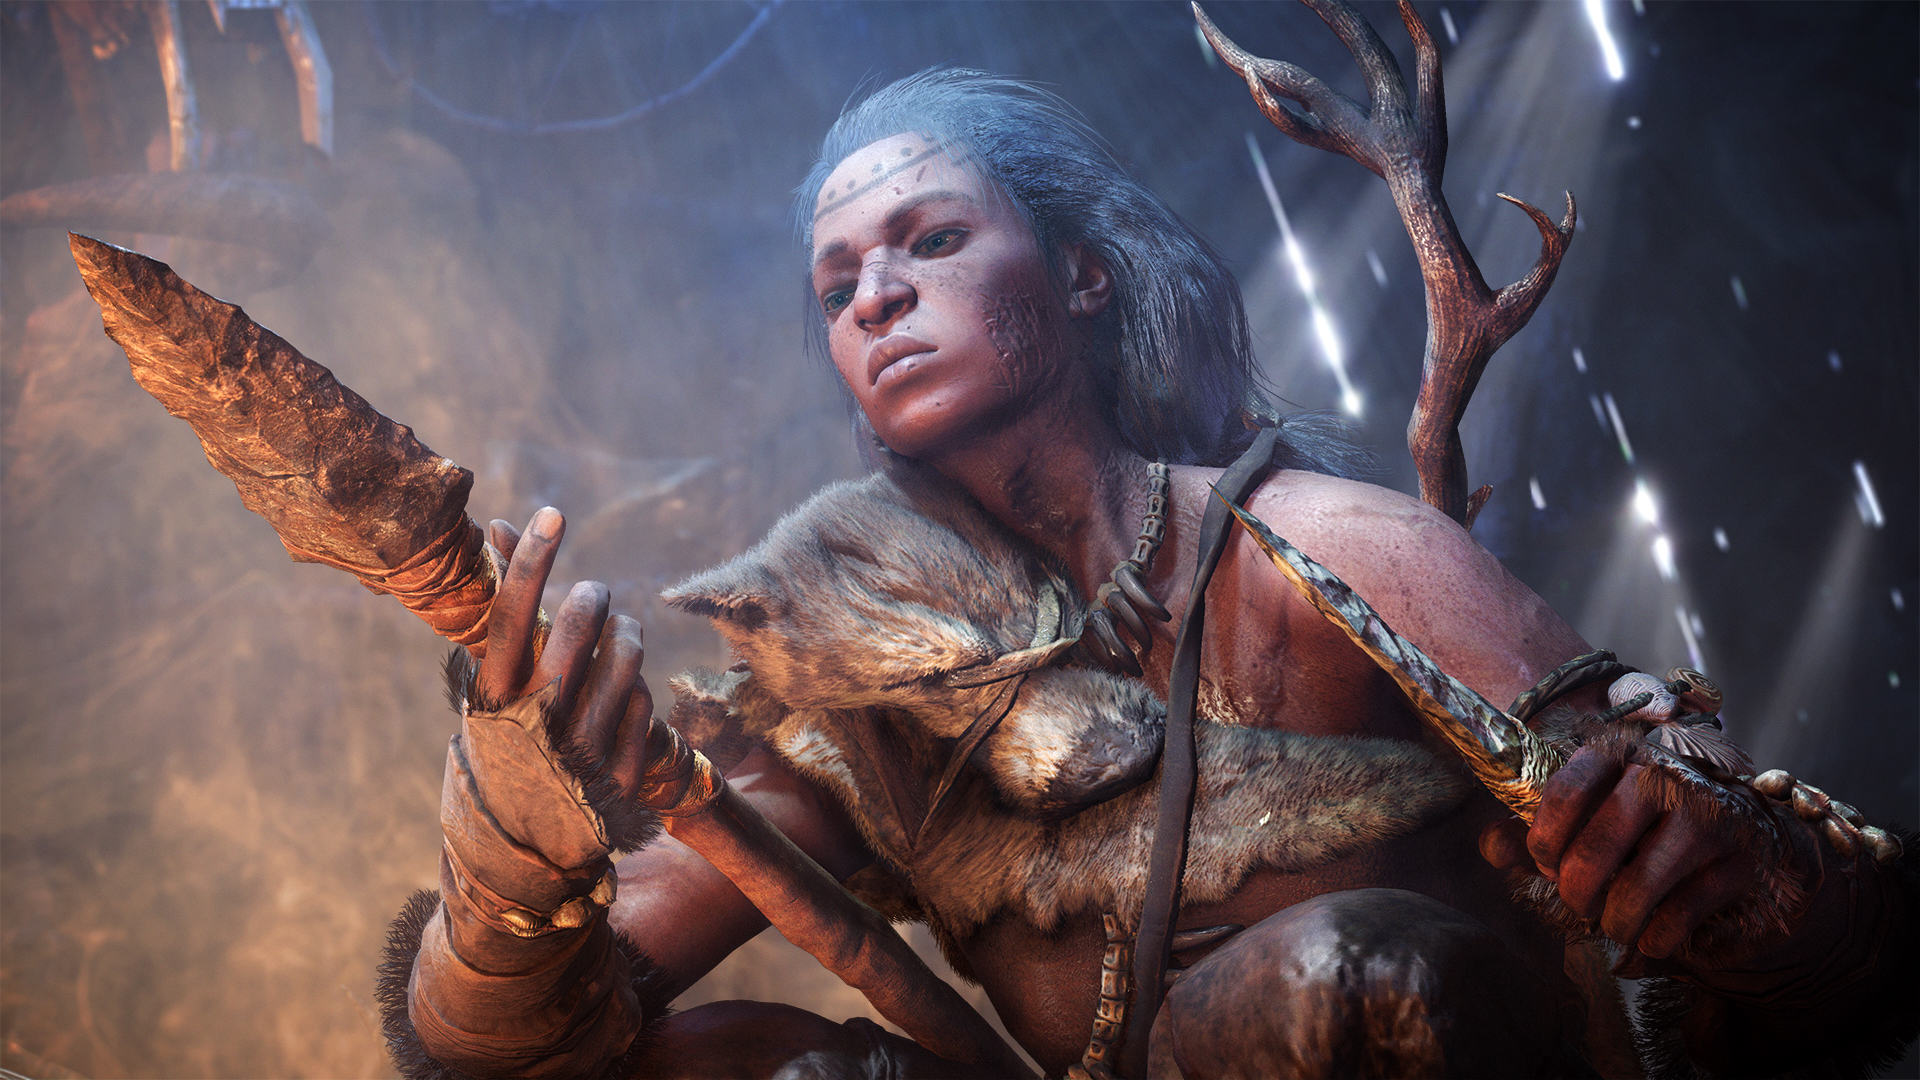 An Exclusive Look At Far Cry Primal Ahead Of Release Day FCP 01  Hunter  Screenshots PREVIEW PR 160126 6pm CET 1453716676